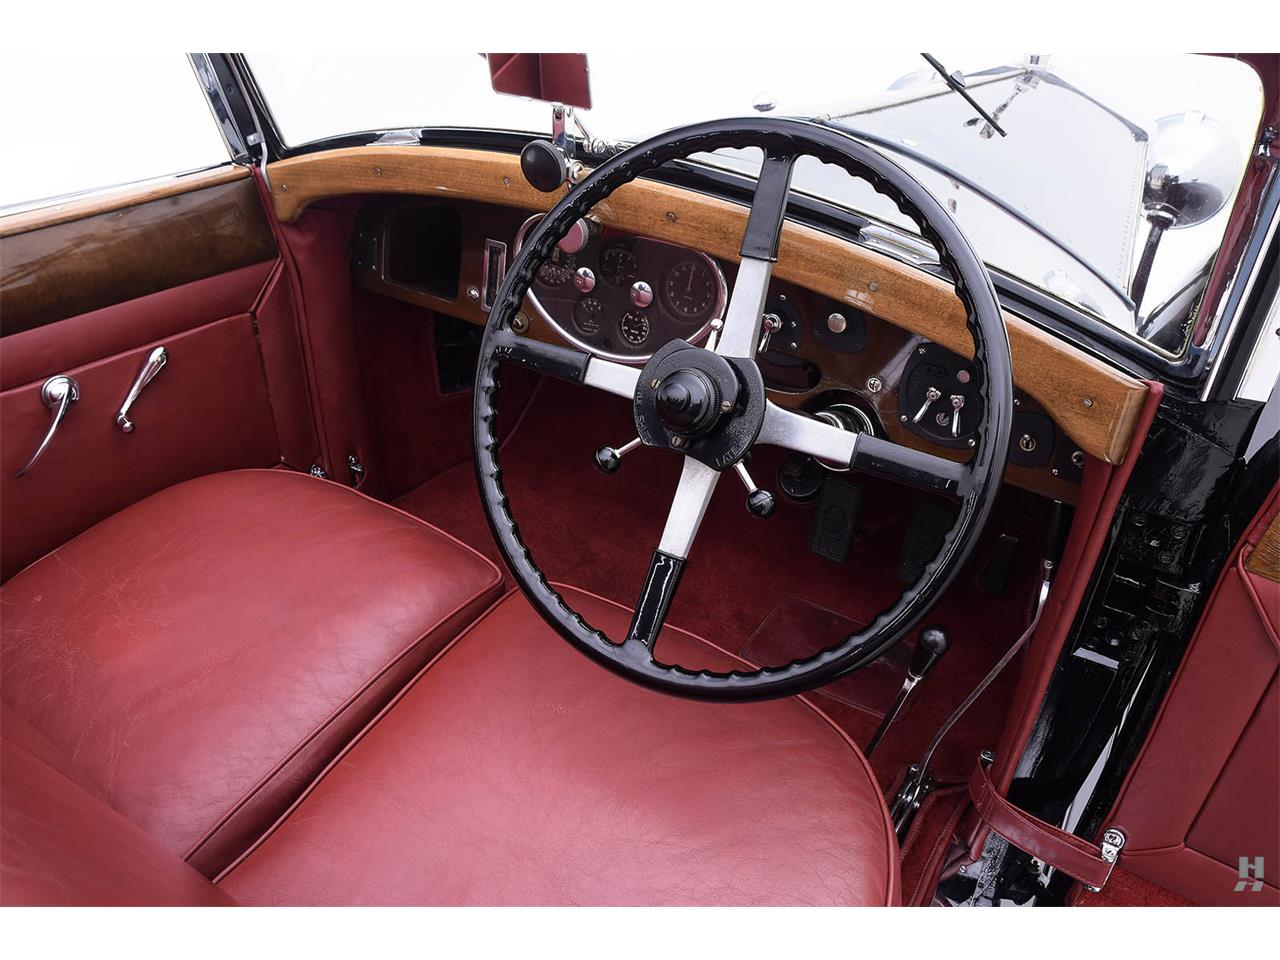 Large Picture of Classic 1934 Rolls-Royce Phantom II located in Missouri - $475,000.00 - JHVW